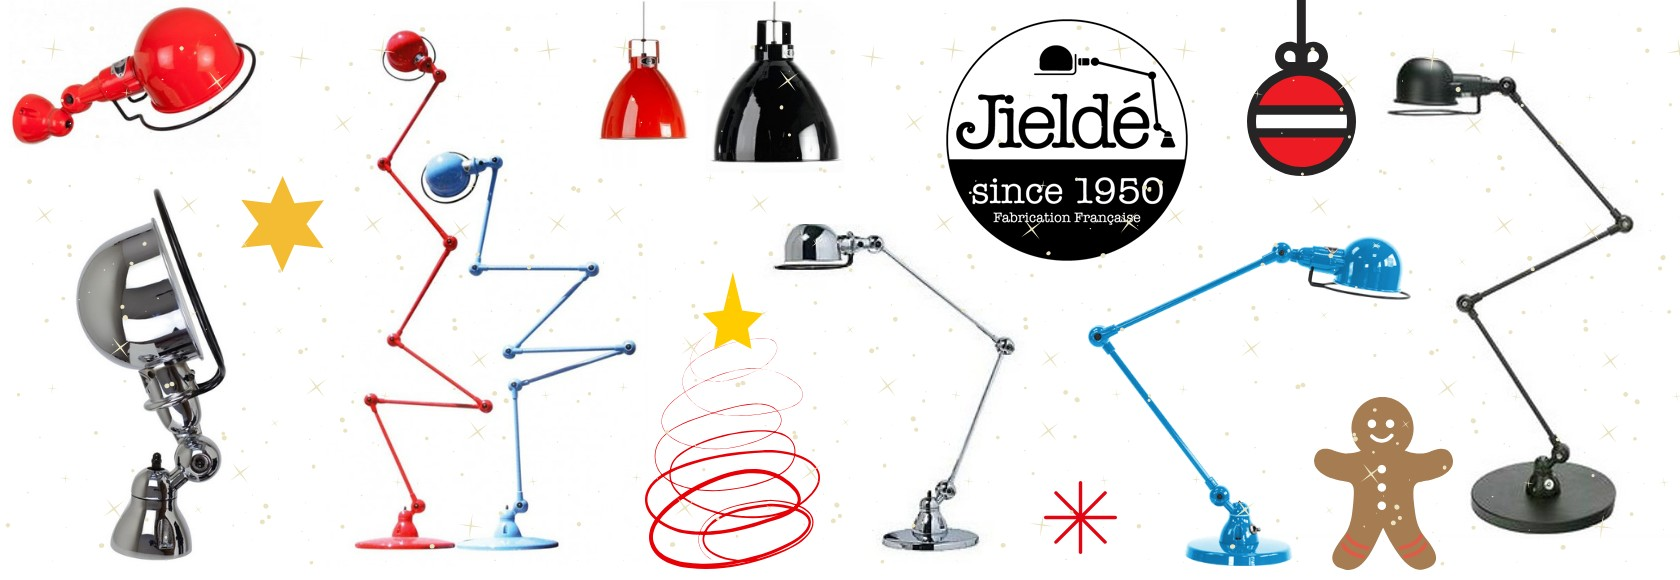 lampes-jielde-collection